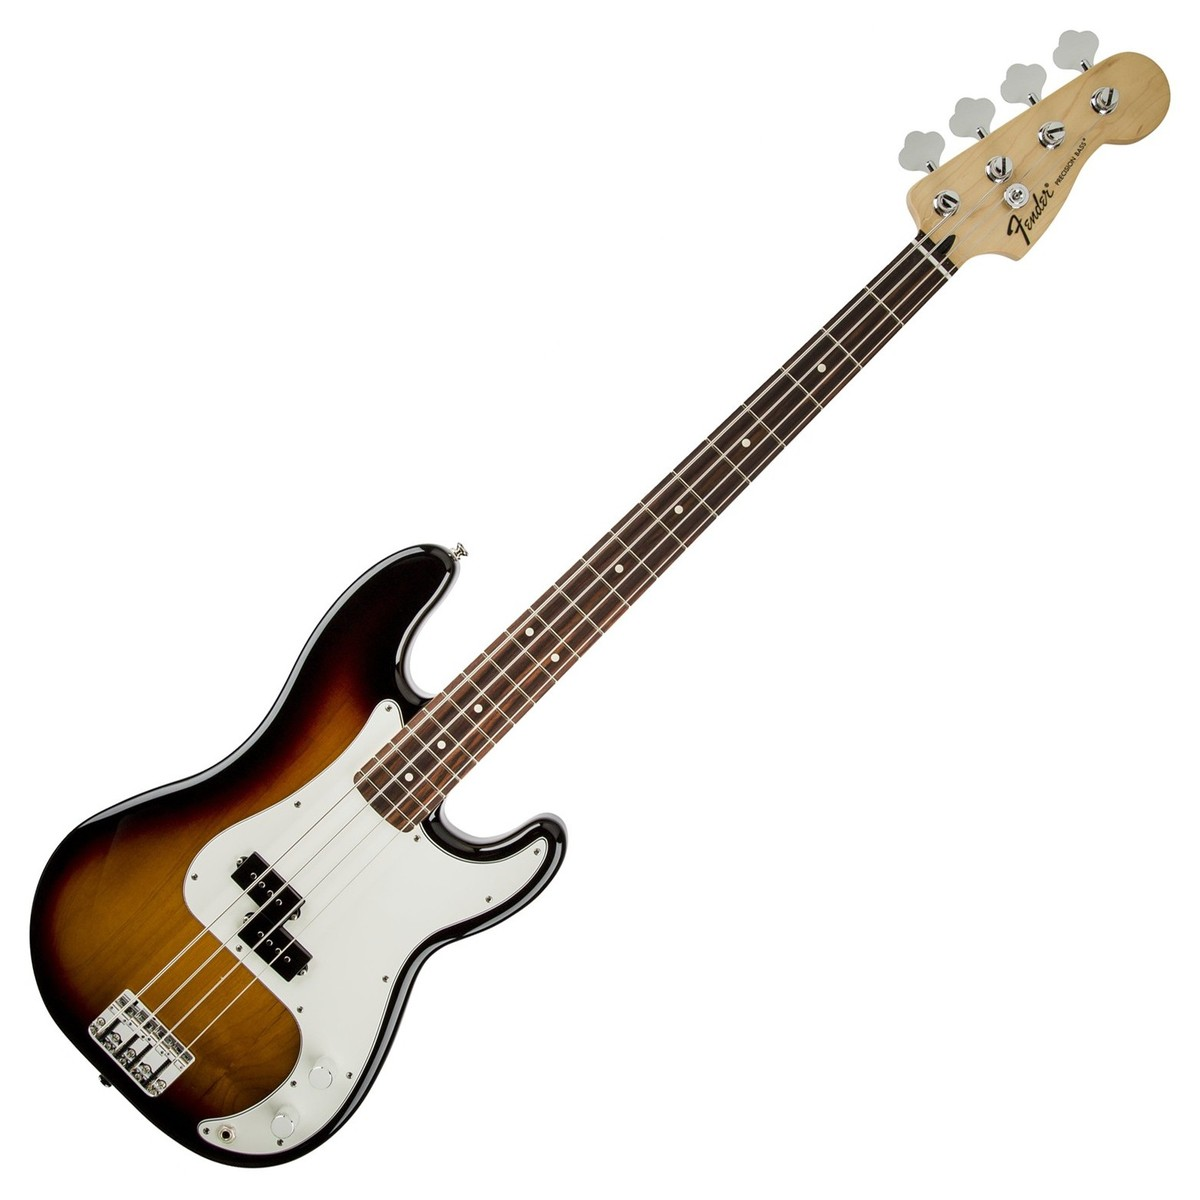 fender standard precision bass rw brown sunburst at